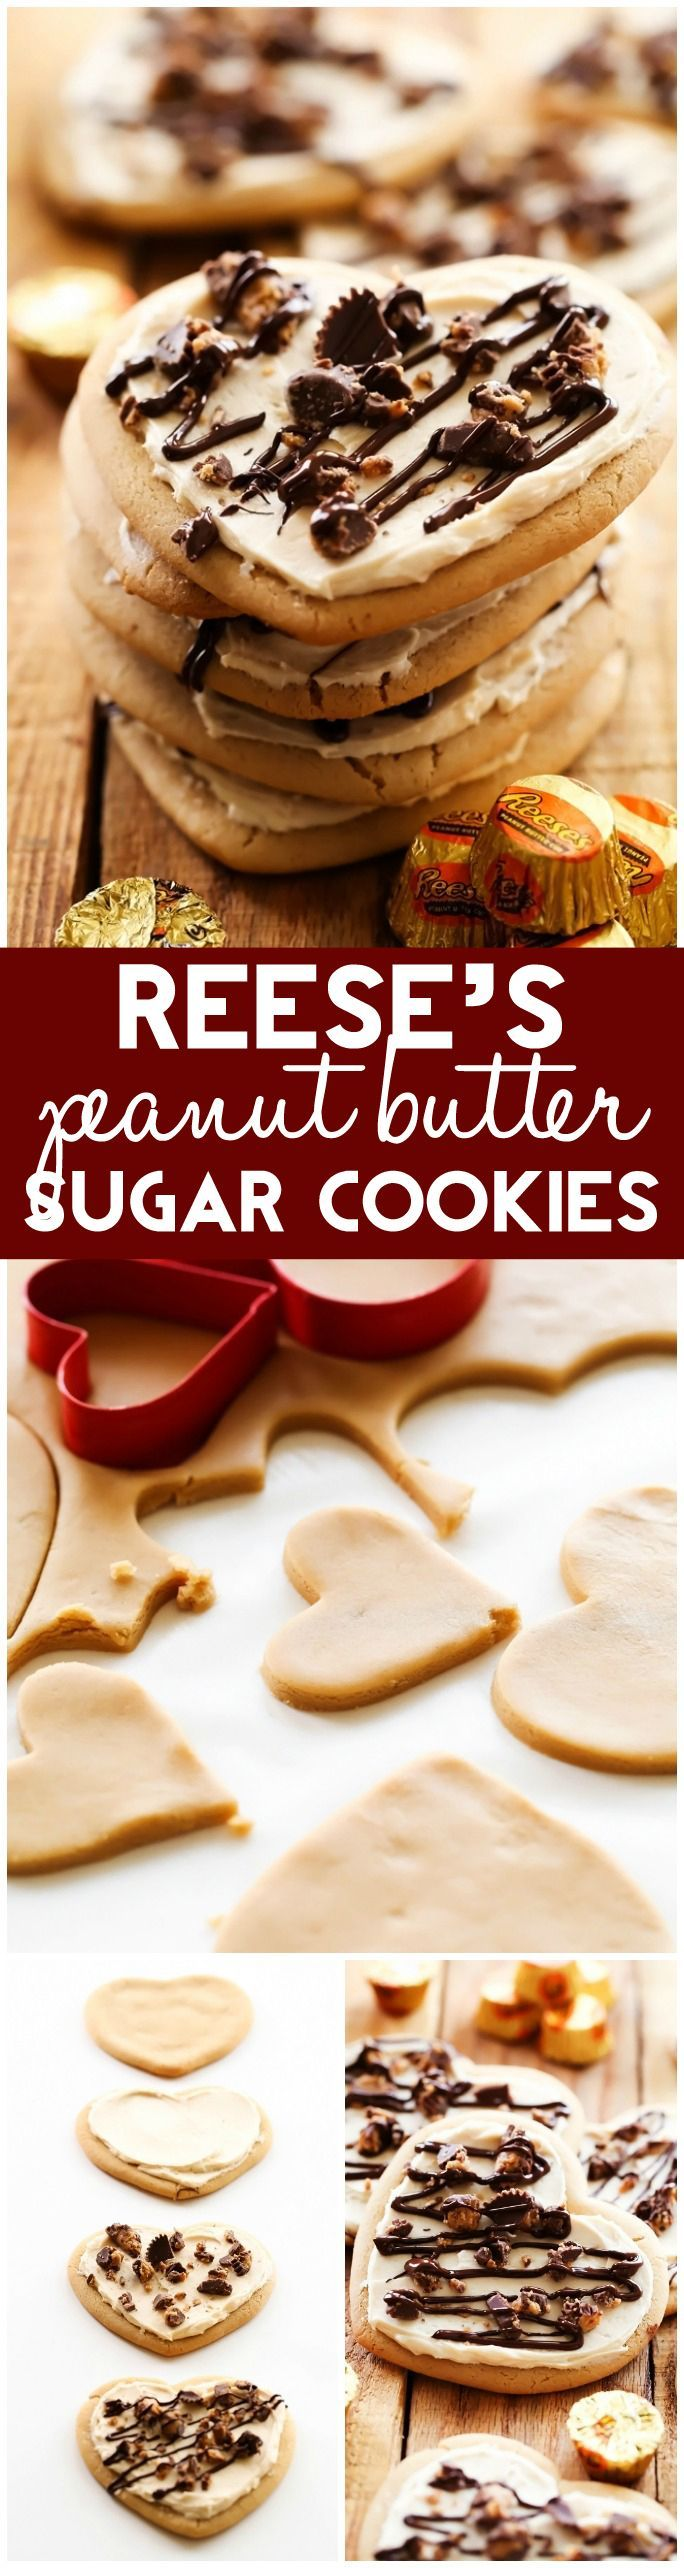 Delicious Peanut Butter Sugar Cookies that are the perfect flavor and texture! They are topped with an incredible Peanut Butter Buttercream, sprinkled with REESE'S chocolates and drizzled with chocolate. These are sure to be a huge hit!